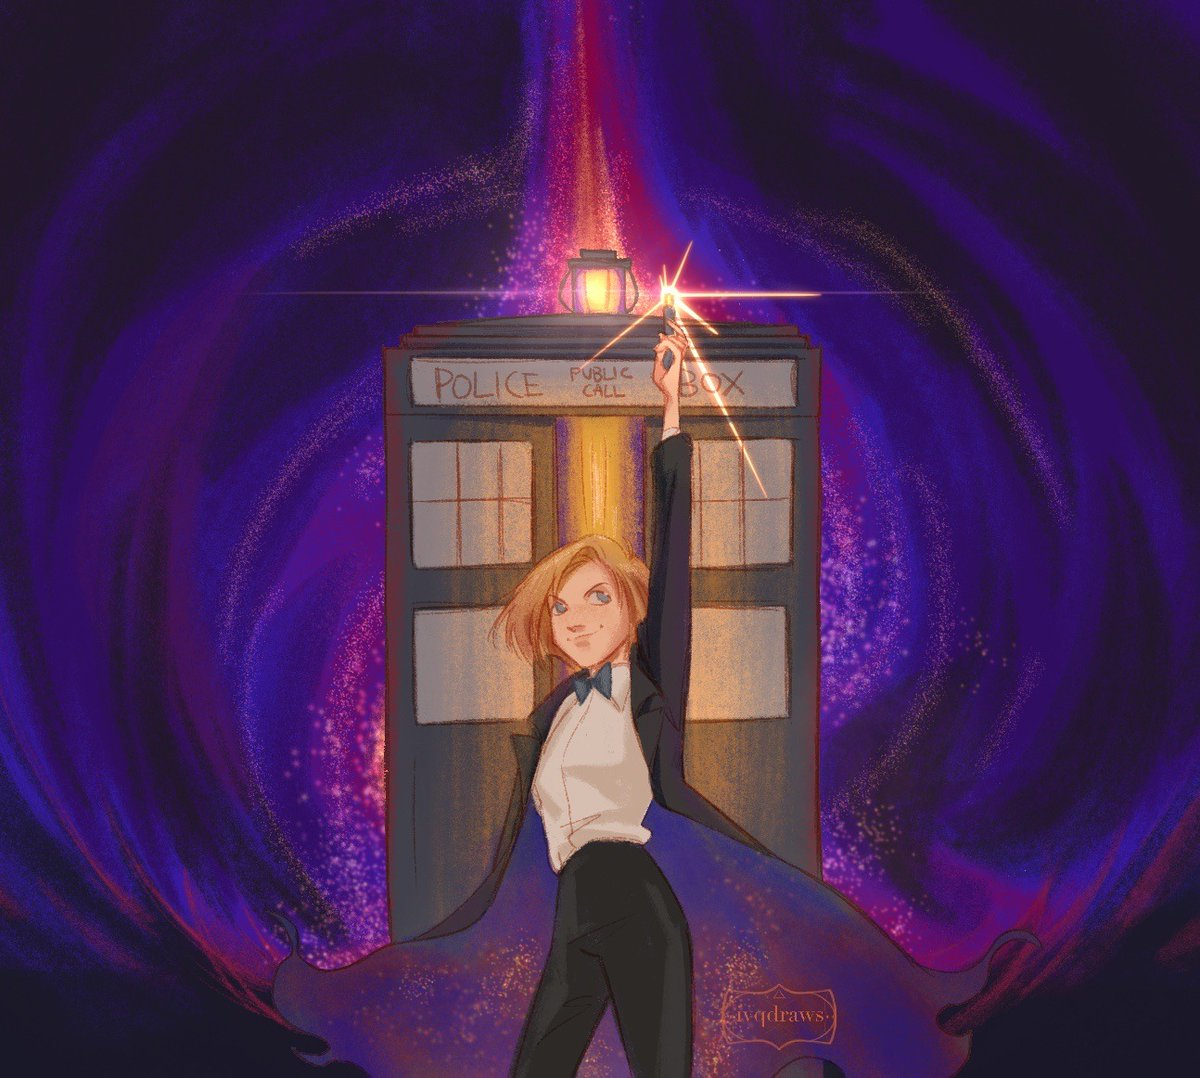 reposting some of my #DoctorWho fanarts from last year for #DoctorWhoDay !!